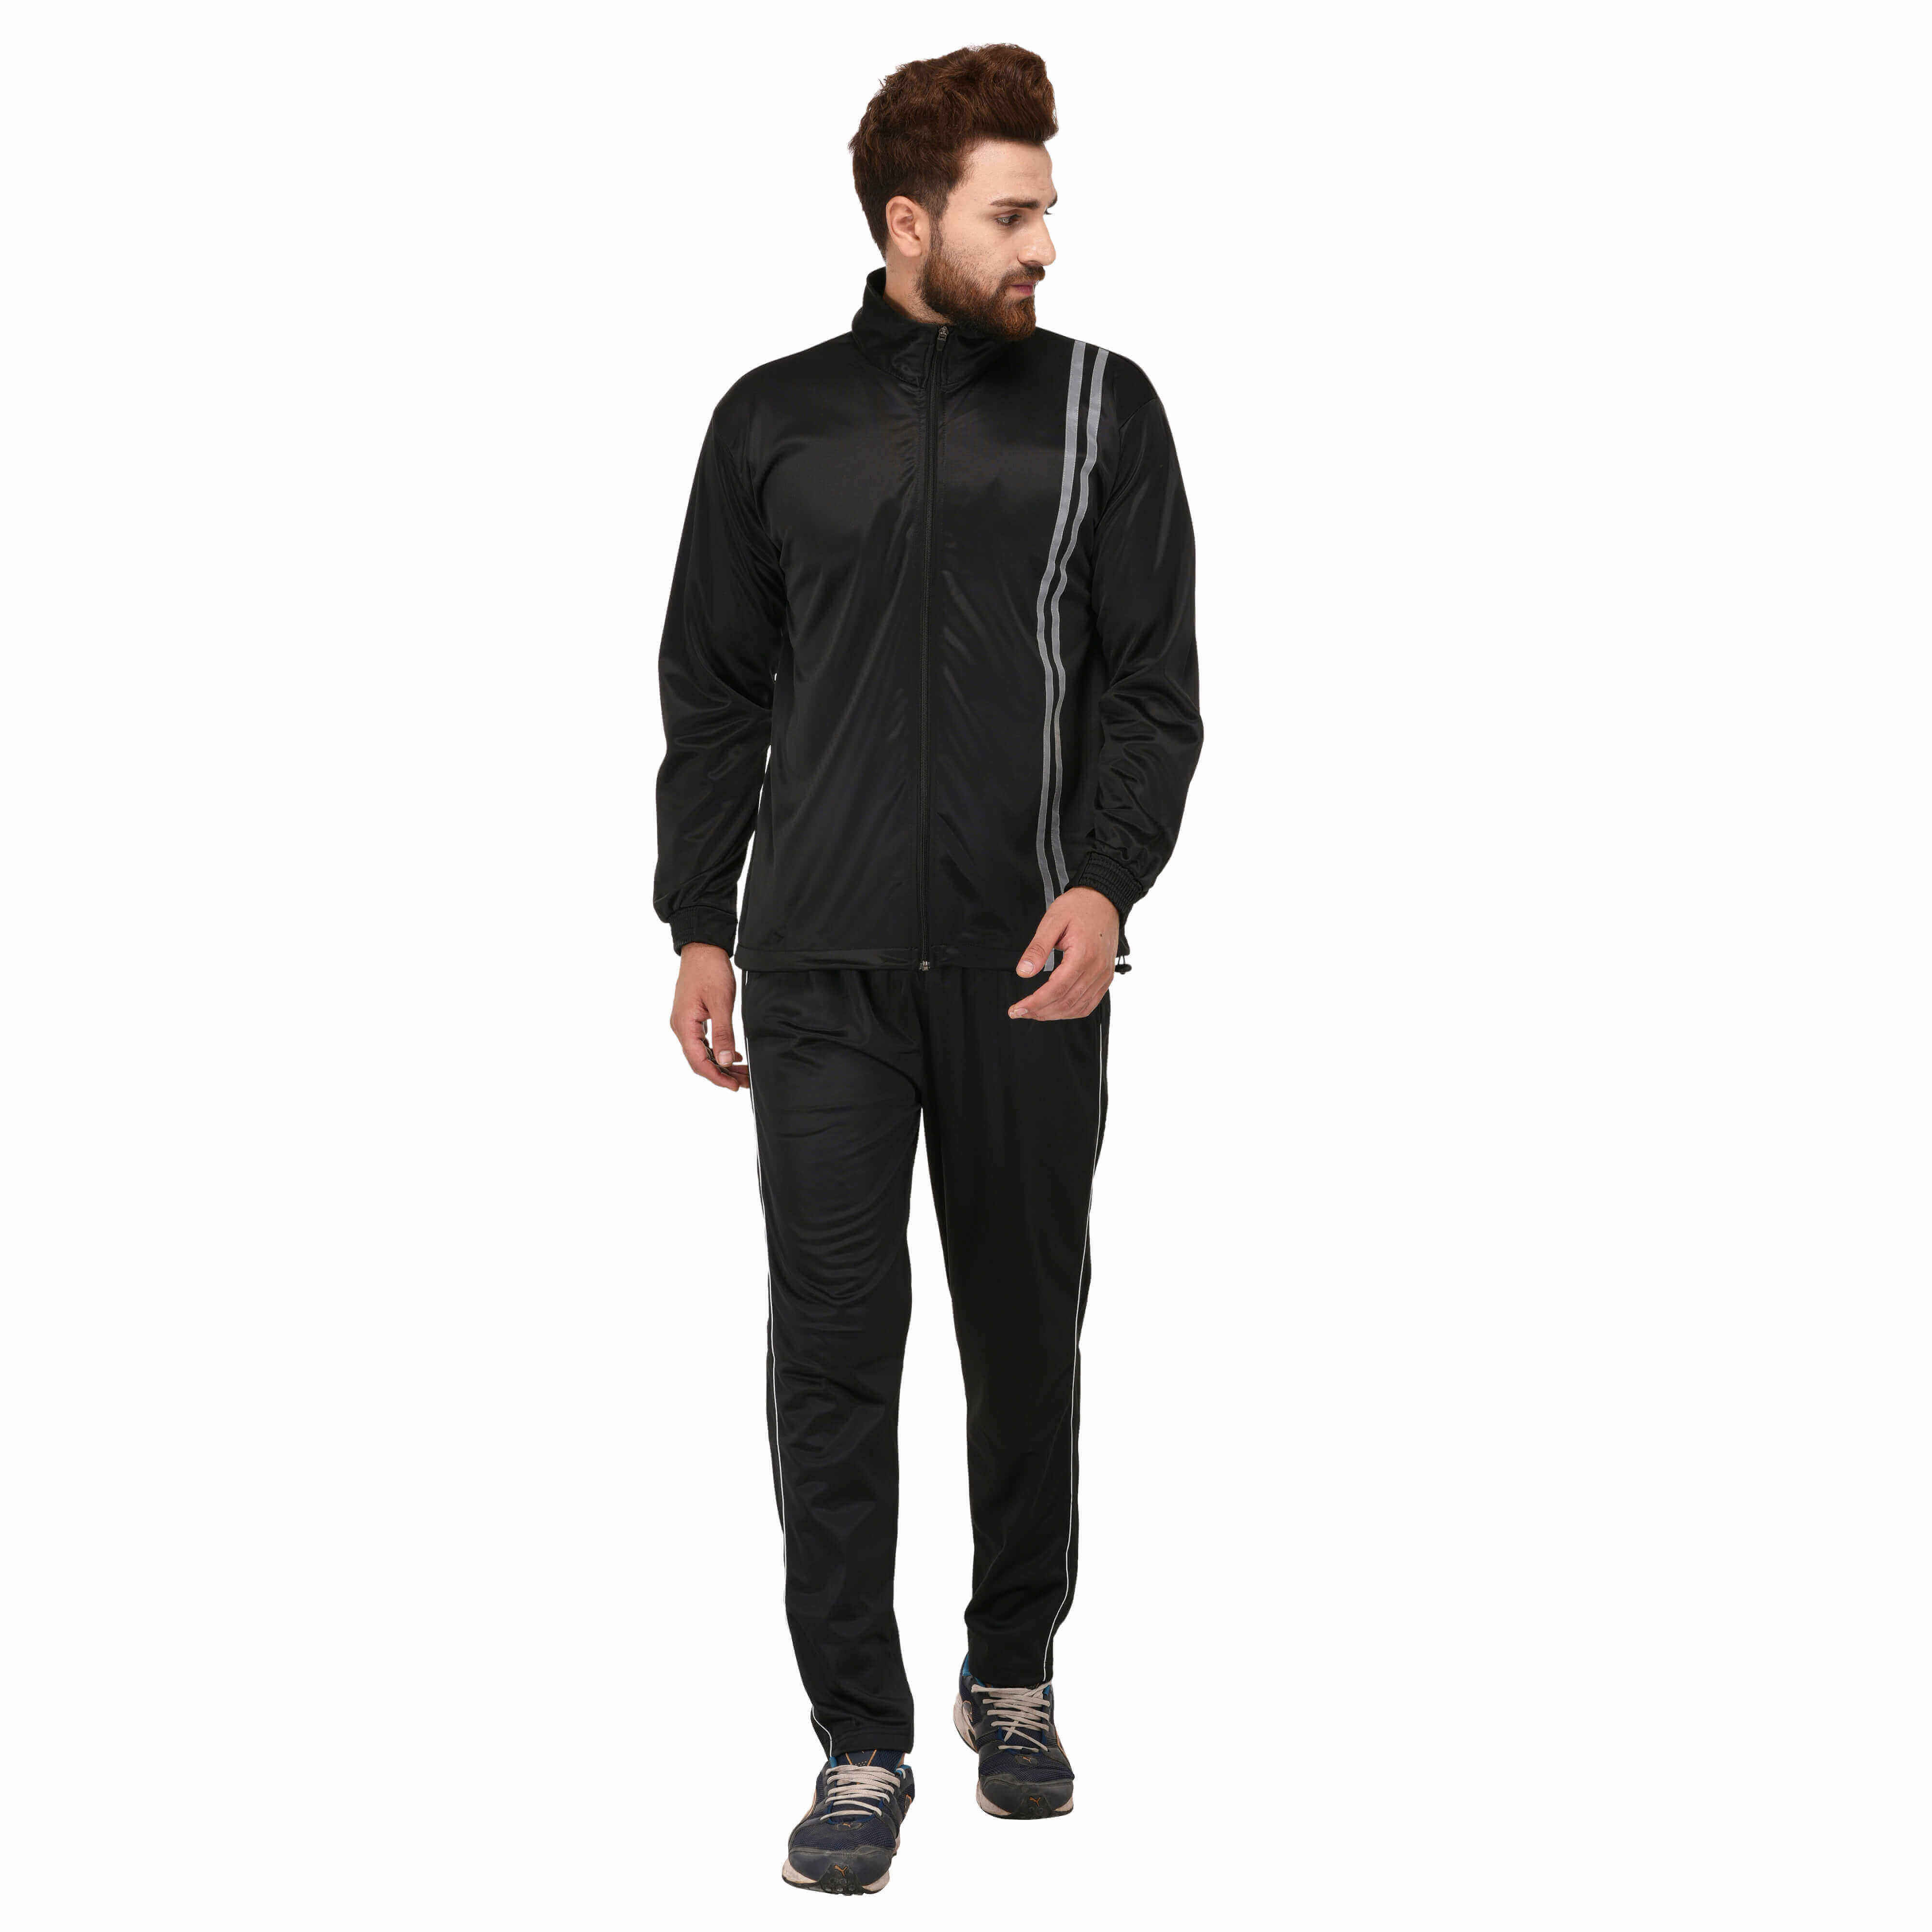 Mens Tracksuit Set Manufacturers in Raipur